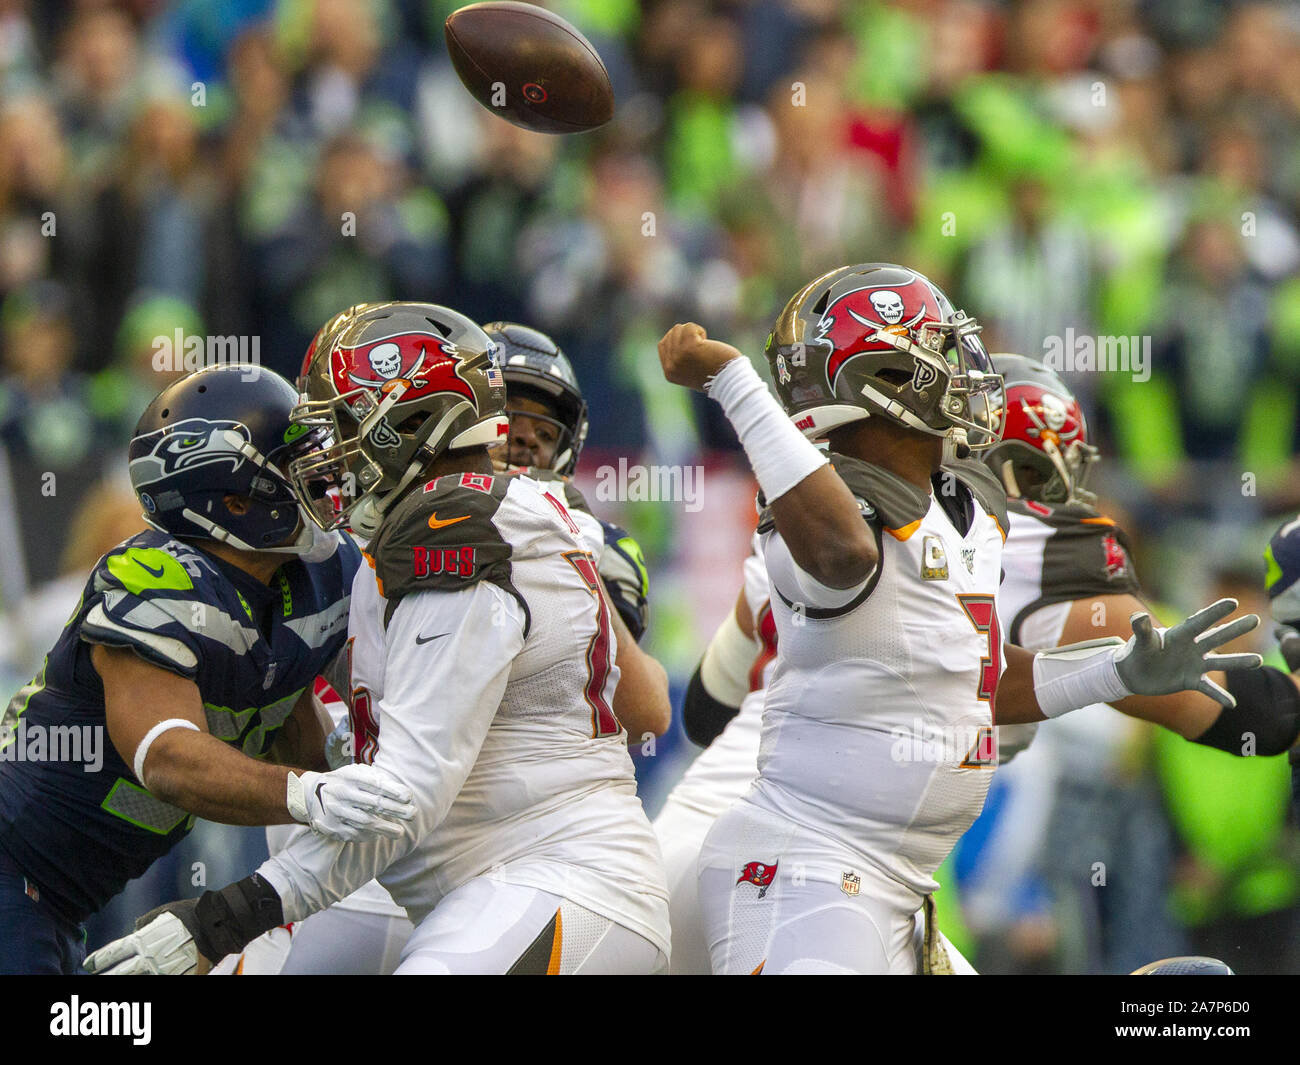 Seattle, United States. 03rd Nov, 2019. Tampa Bay Buccaneers quarterback Jameis Winston (3) looses the ball while trying to pass against the Seattle Seahawks during the fourth quarter at CenturyLink Field on Sunday, November 3, 2019 in Seattle, Washington. Seattle Seahawks defensive end Rasheem Green (98) caught the ball. In mid-air and returned it to the Tampa Bay 15-yard line. The Seahawks beat the Buccaneers 40-34 in overtime. Jim Bryant Photo/UPI Credit: UPI/Alamy Live News Stock Photo